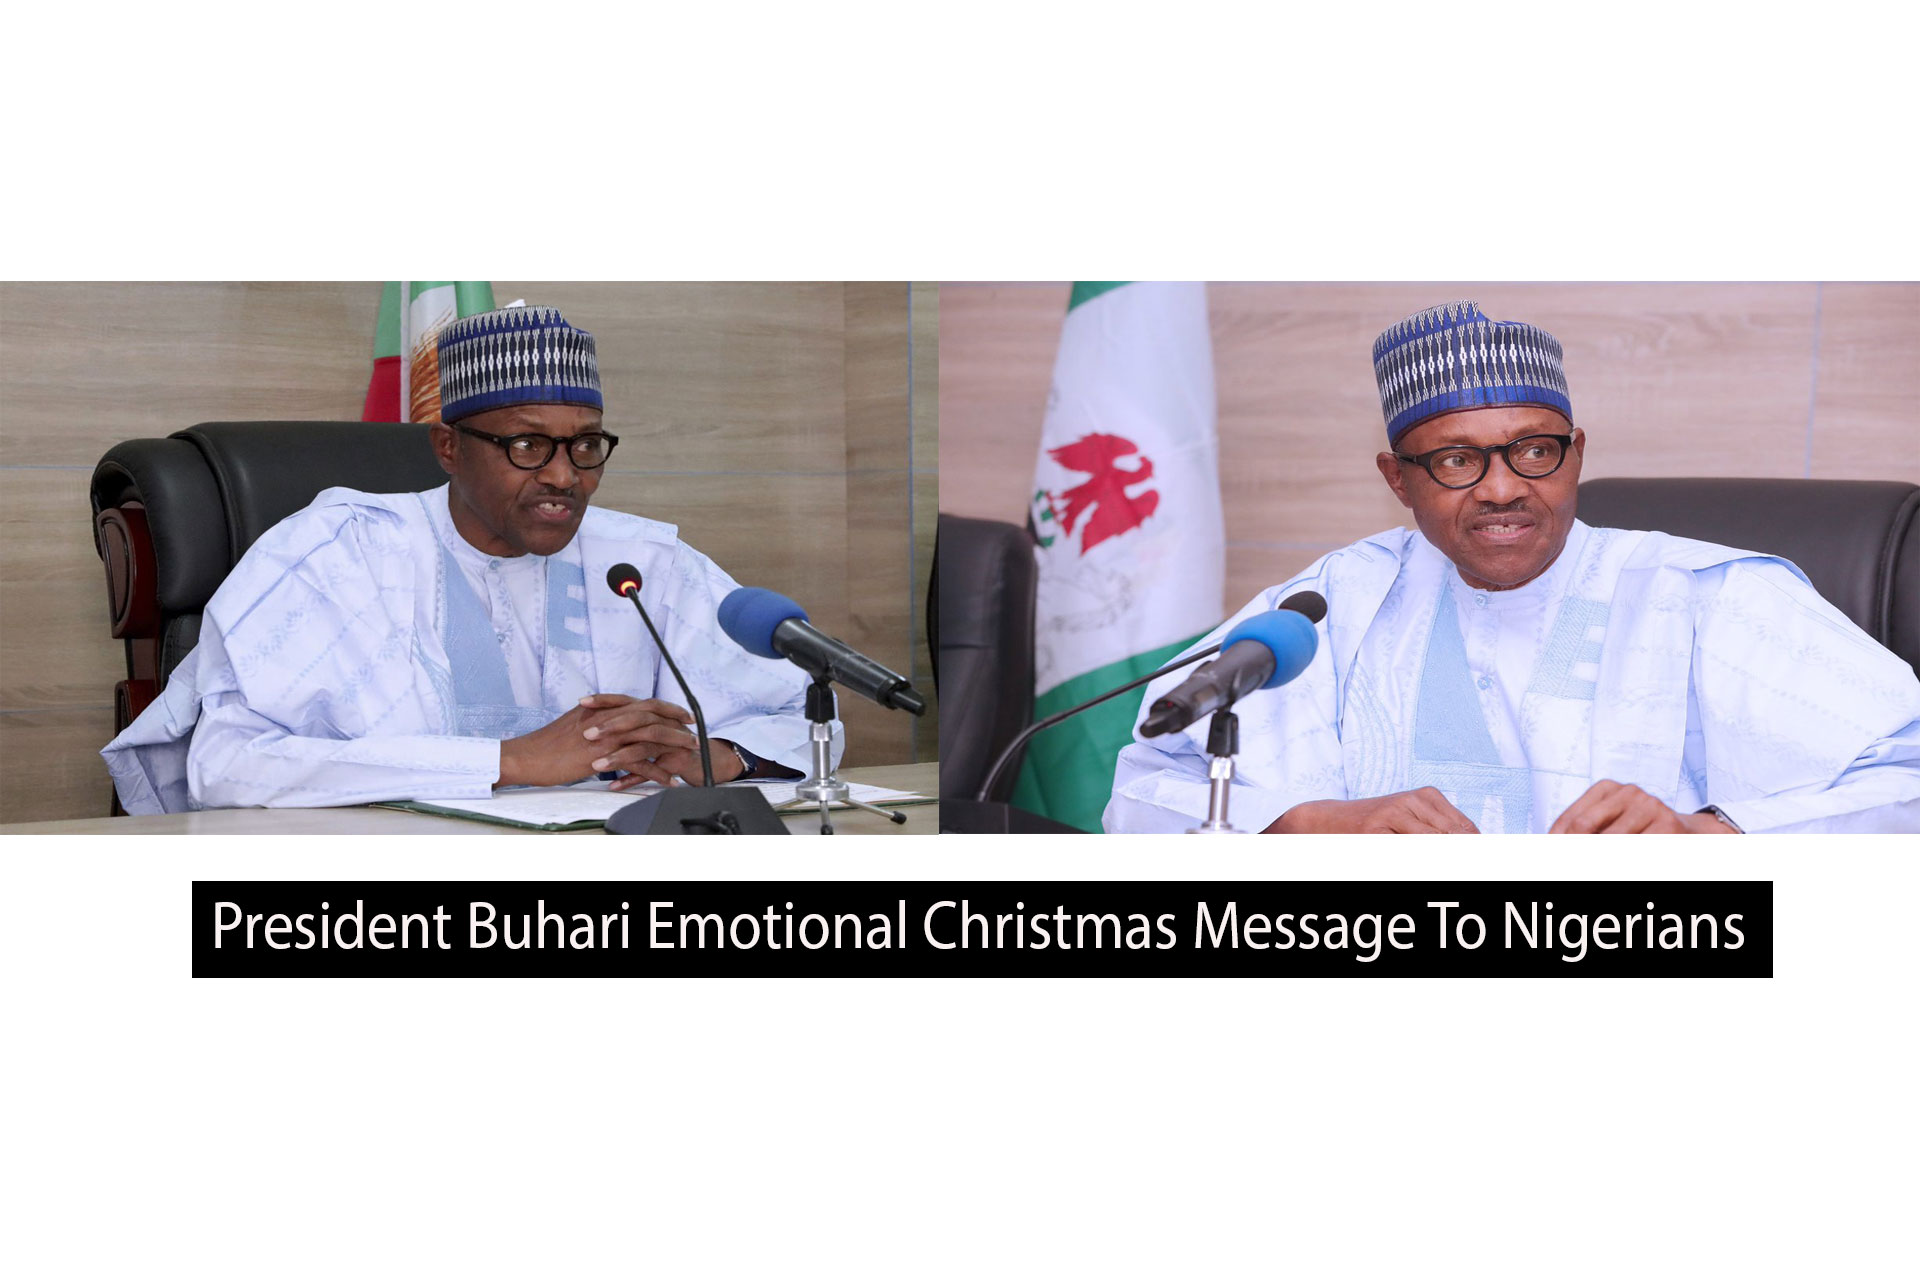 President Buhari Emotional Christmas Message To Nigerians Amid Insecurity and COVID 19. Afrinotes